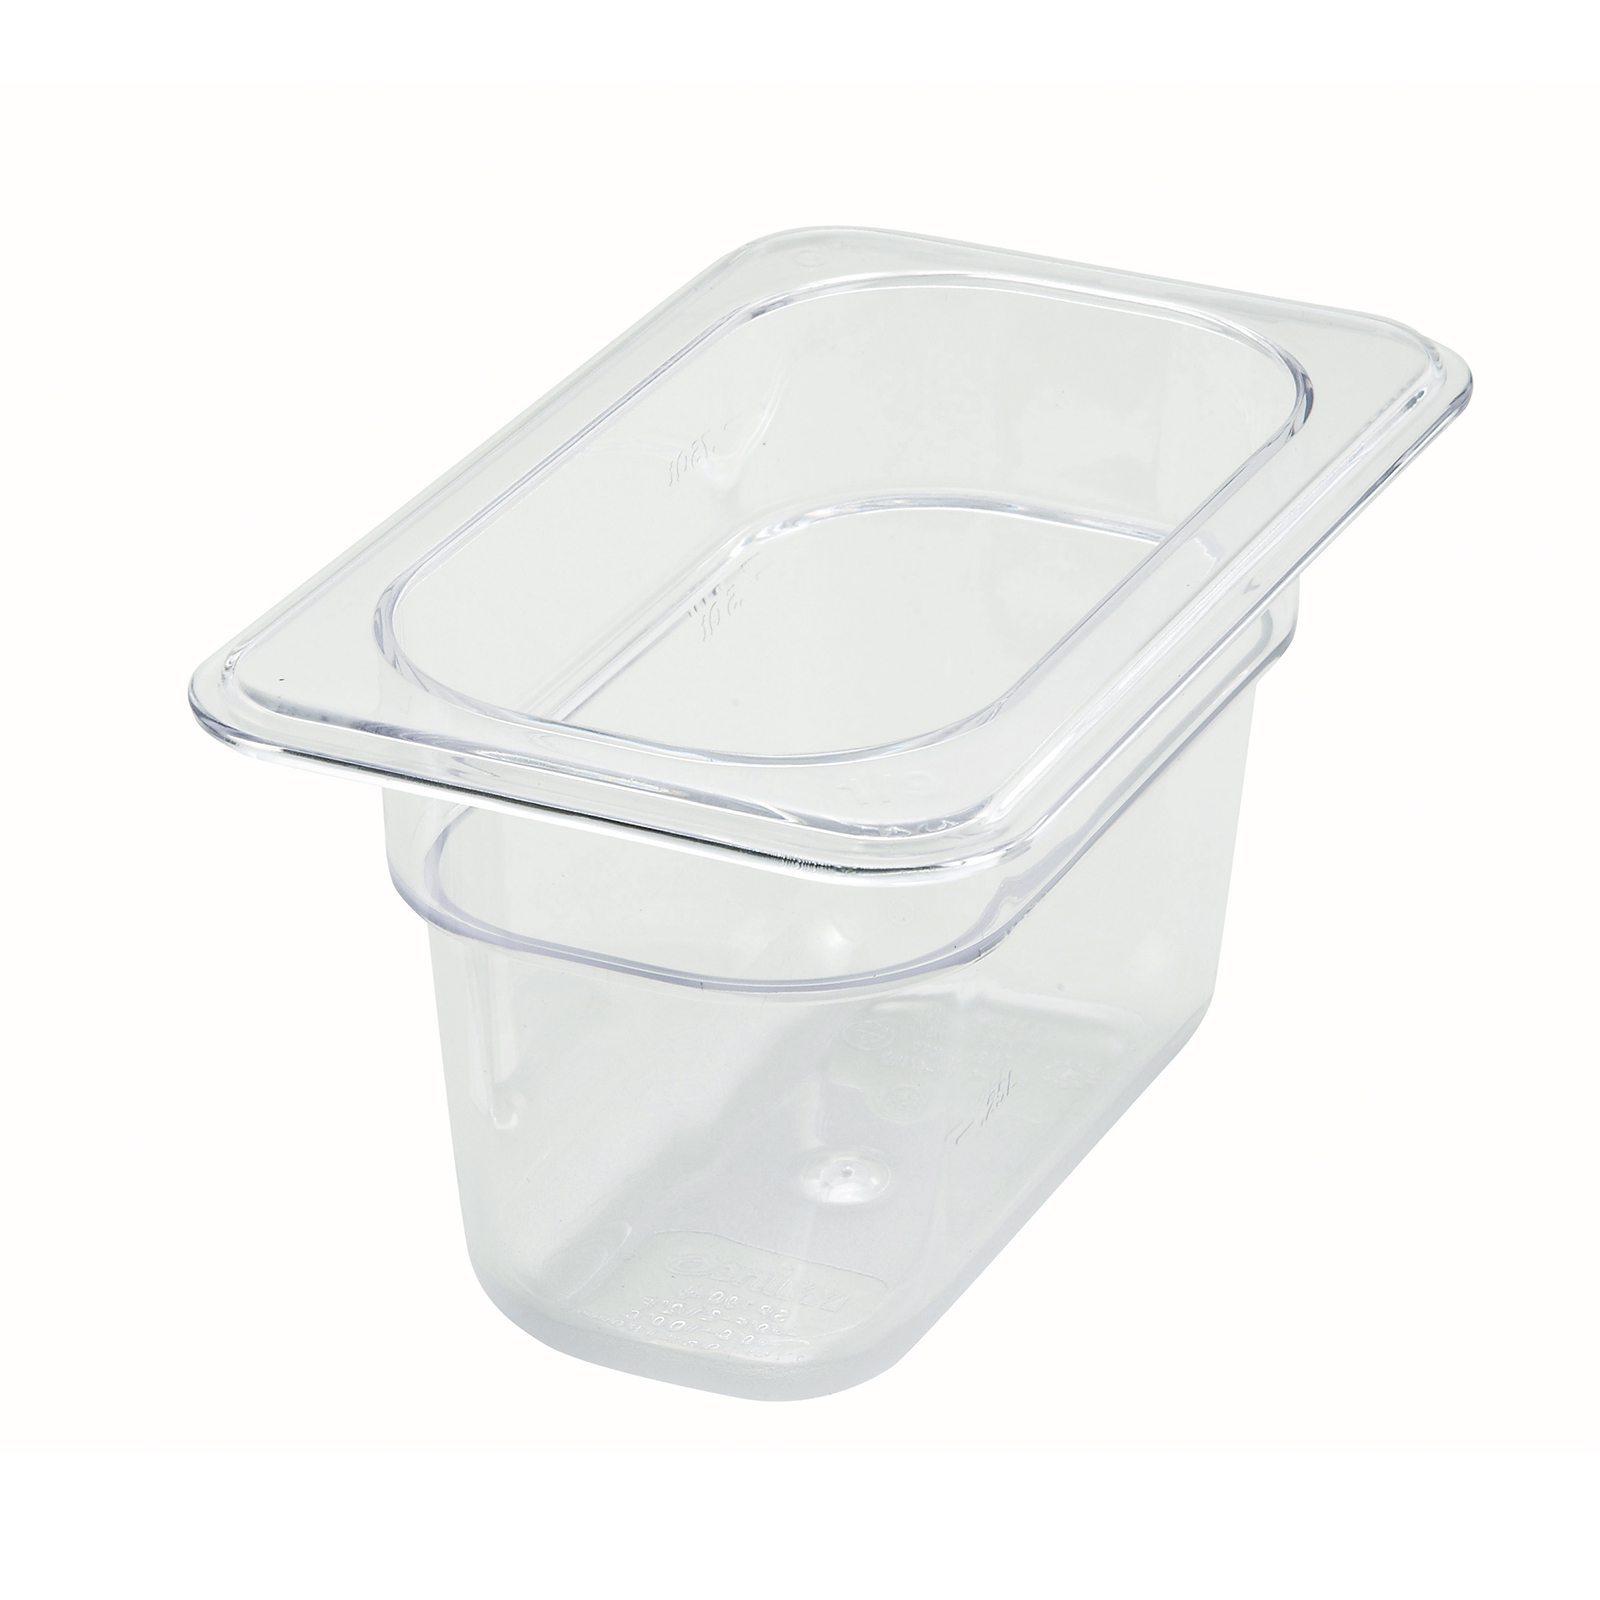 Winco SP7904 food pan, plastic